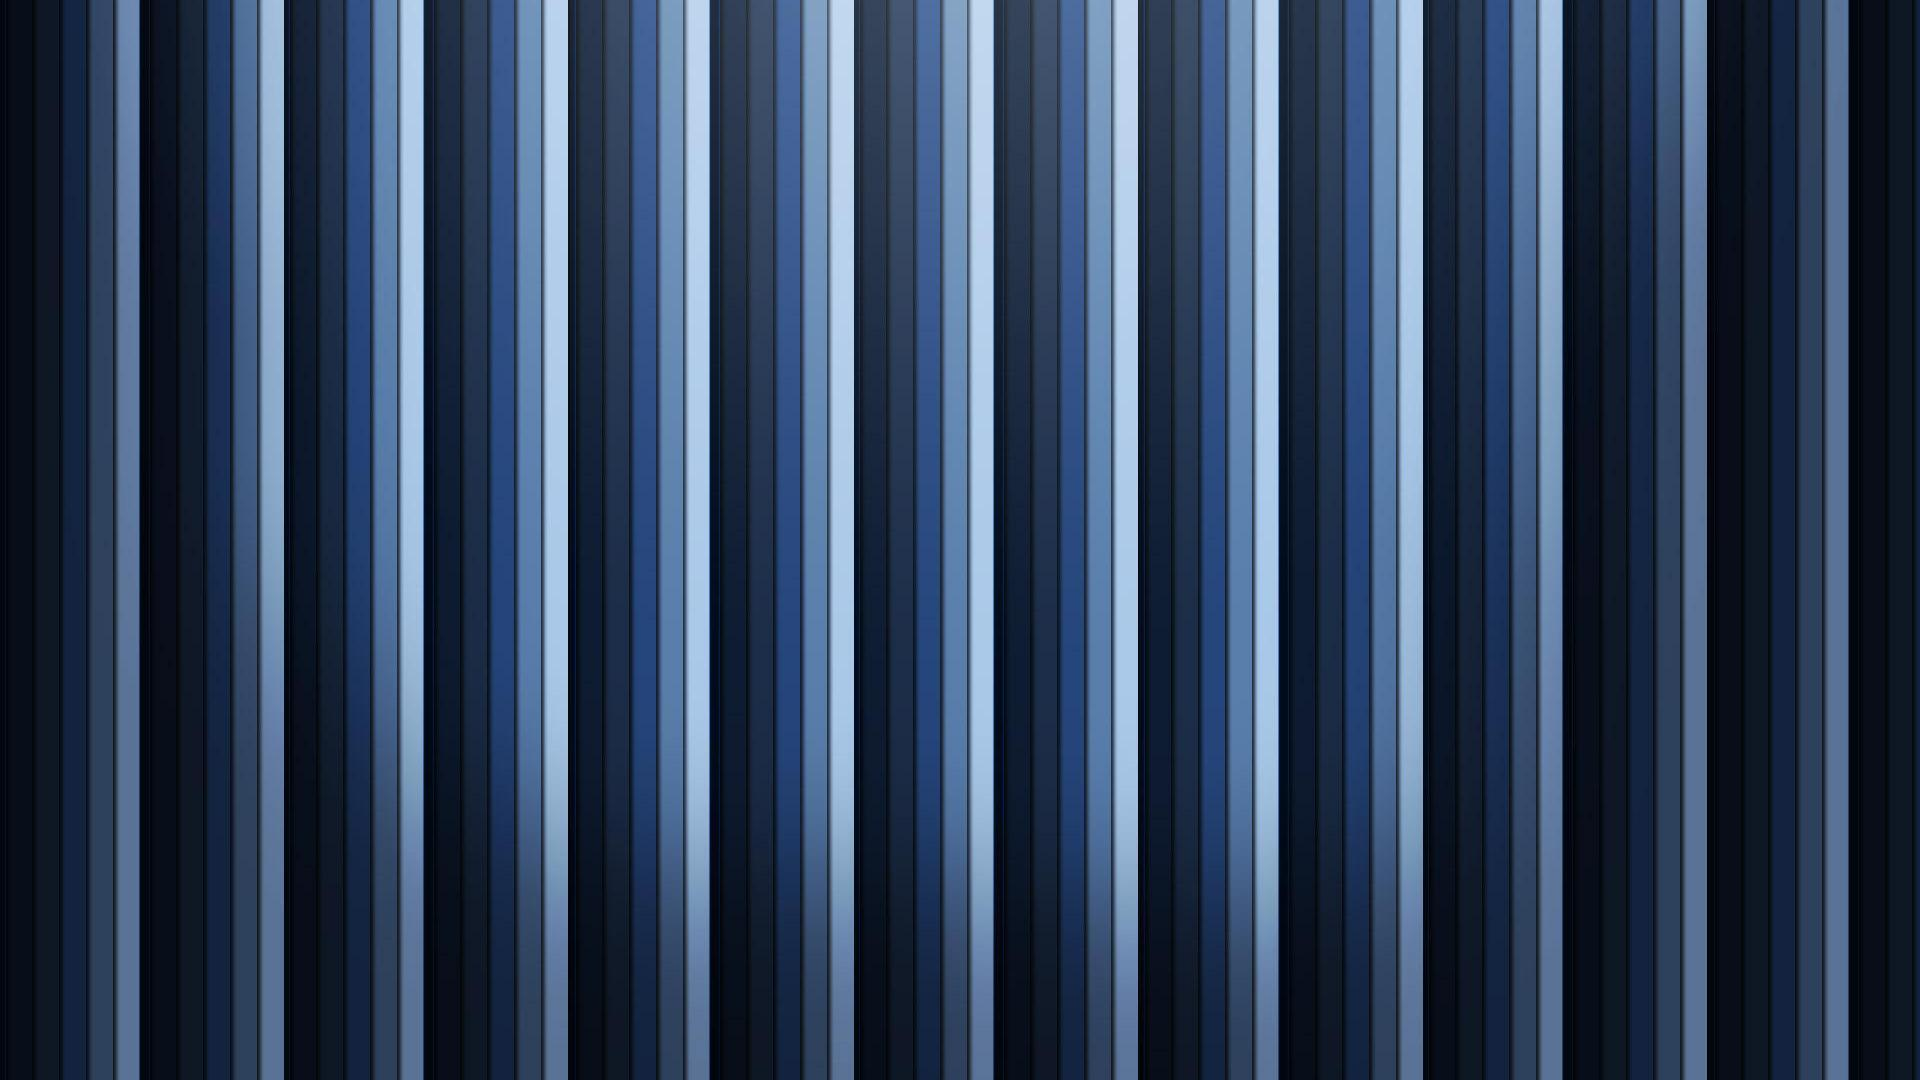 black stripes wallpaper blue blues wallpapers desktop striped 1920x1080